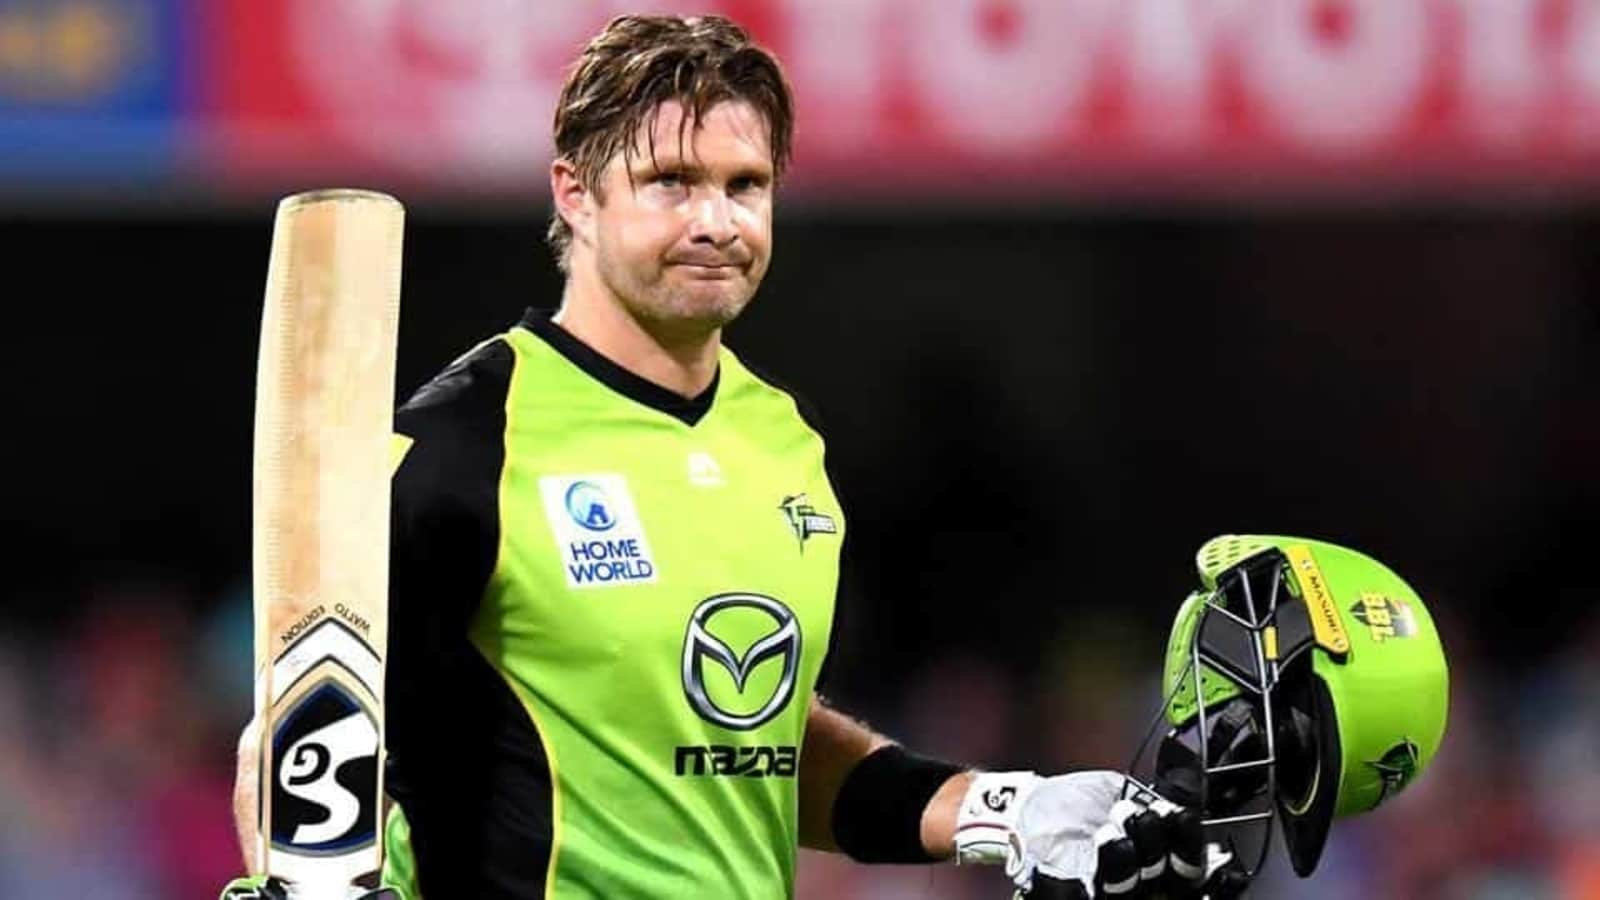 'You have to turn on TV when he's playing': Shane Watson lauds former RCB teammate, names best coach he's worked with